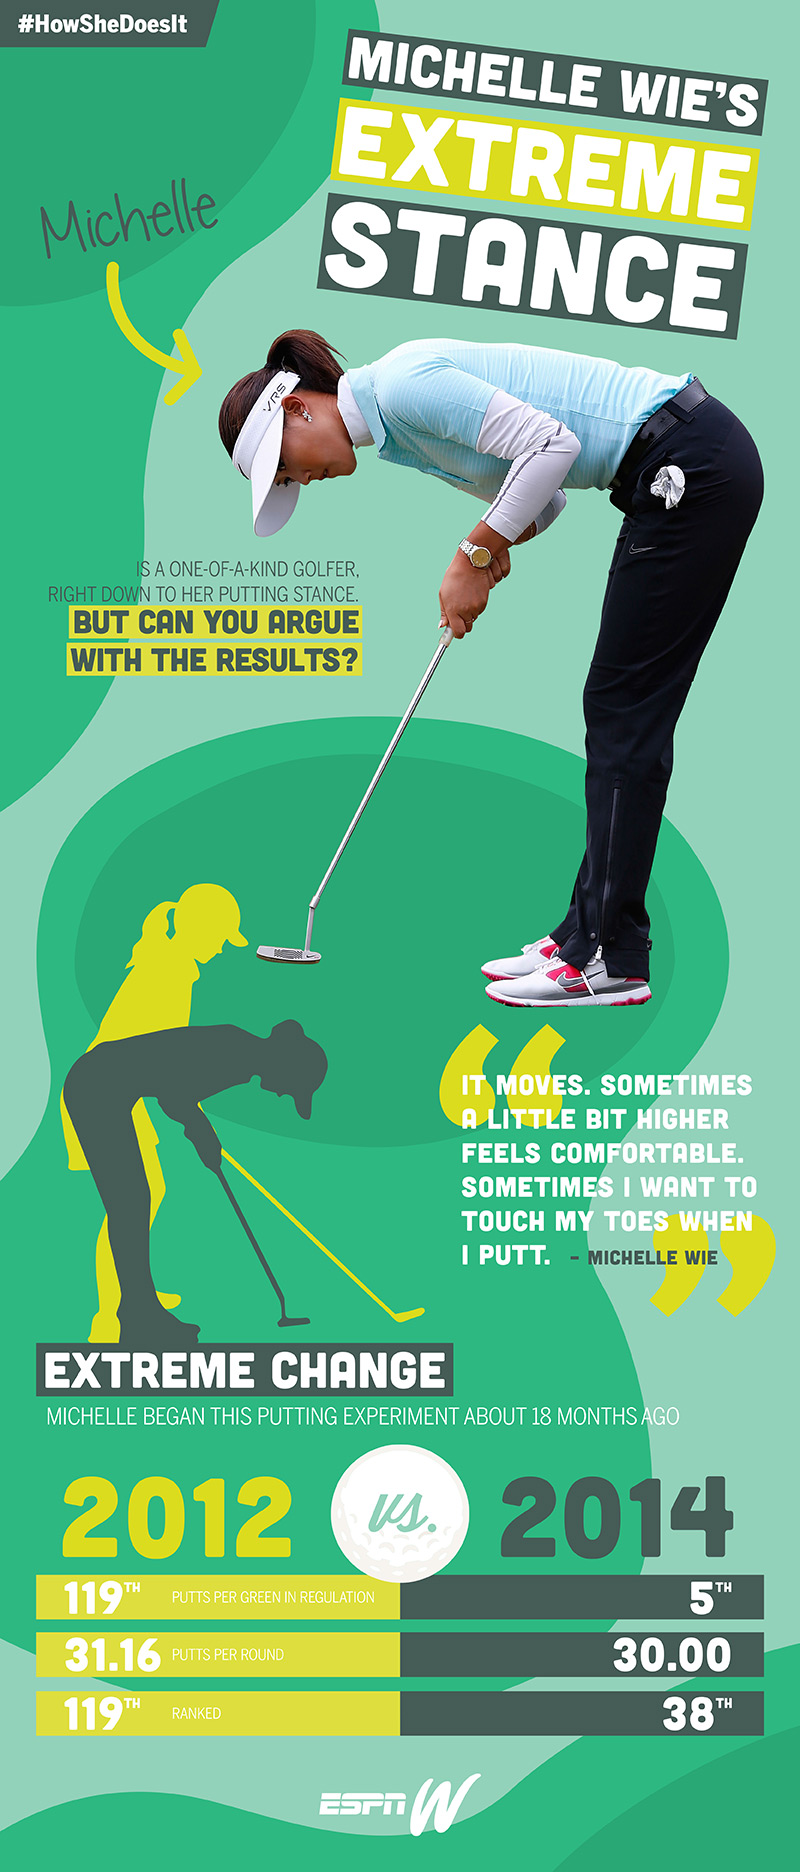 Infographic: Michelle Wie's Extreme Stance